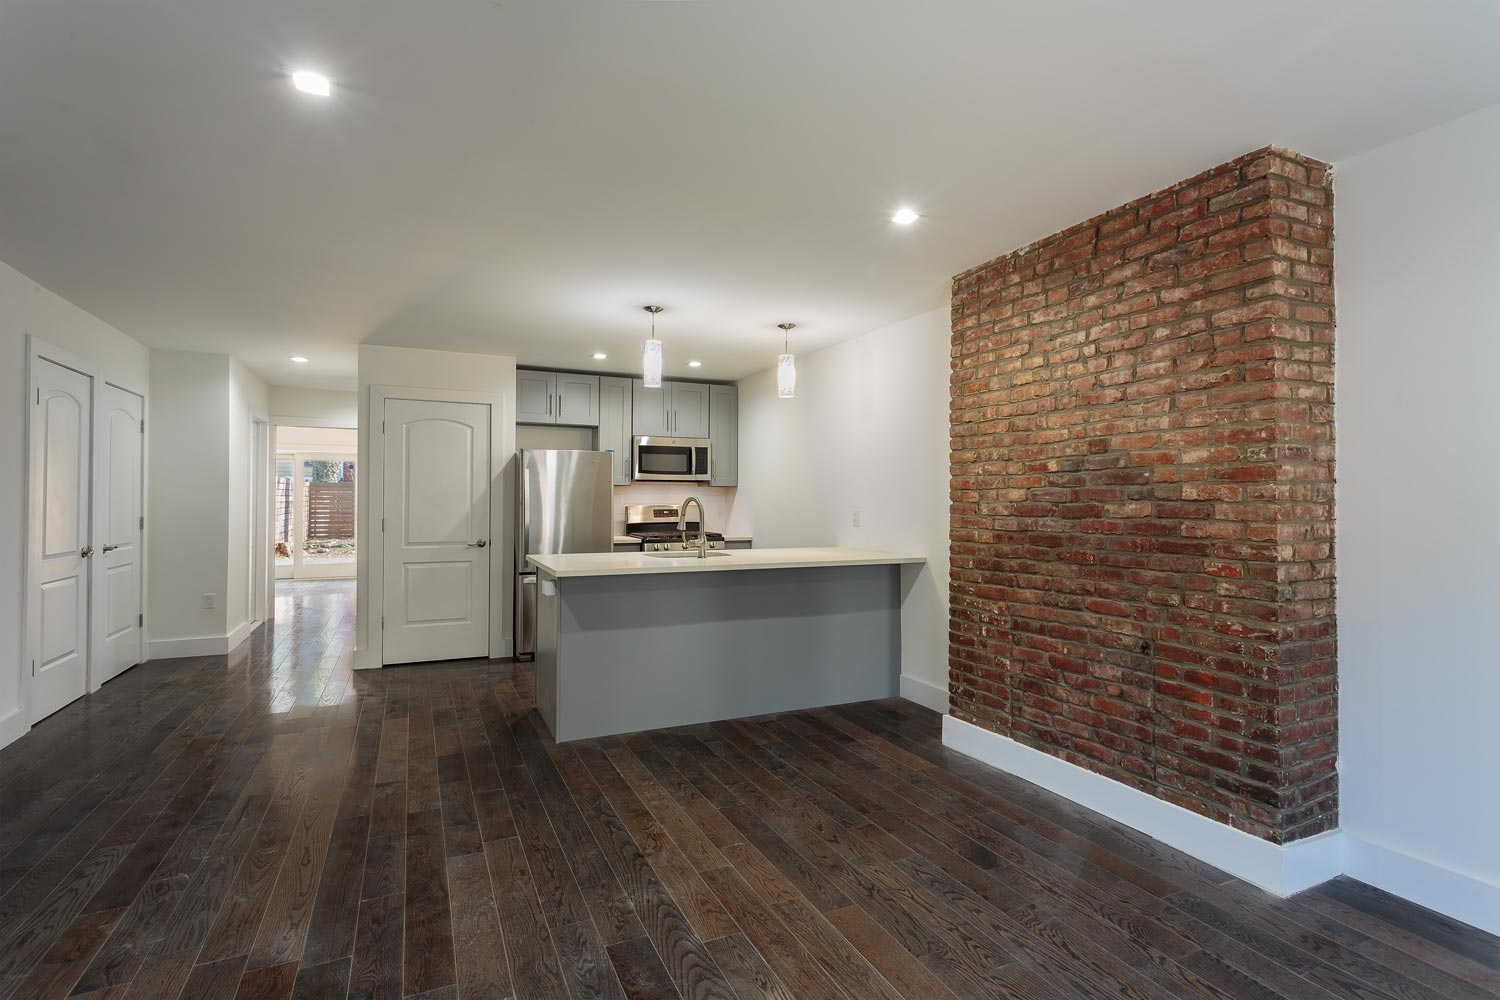 Former fireplaces were left intact and refinished as wall accents at this townhouse renovation